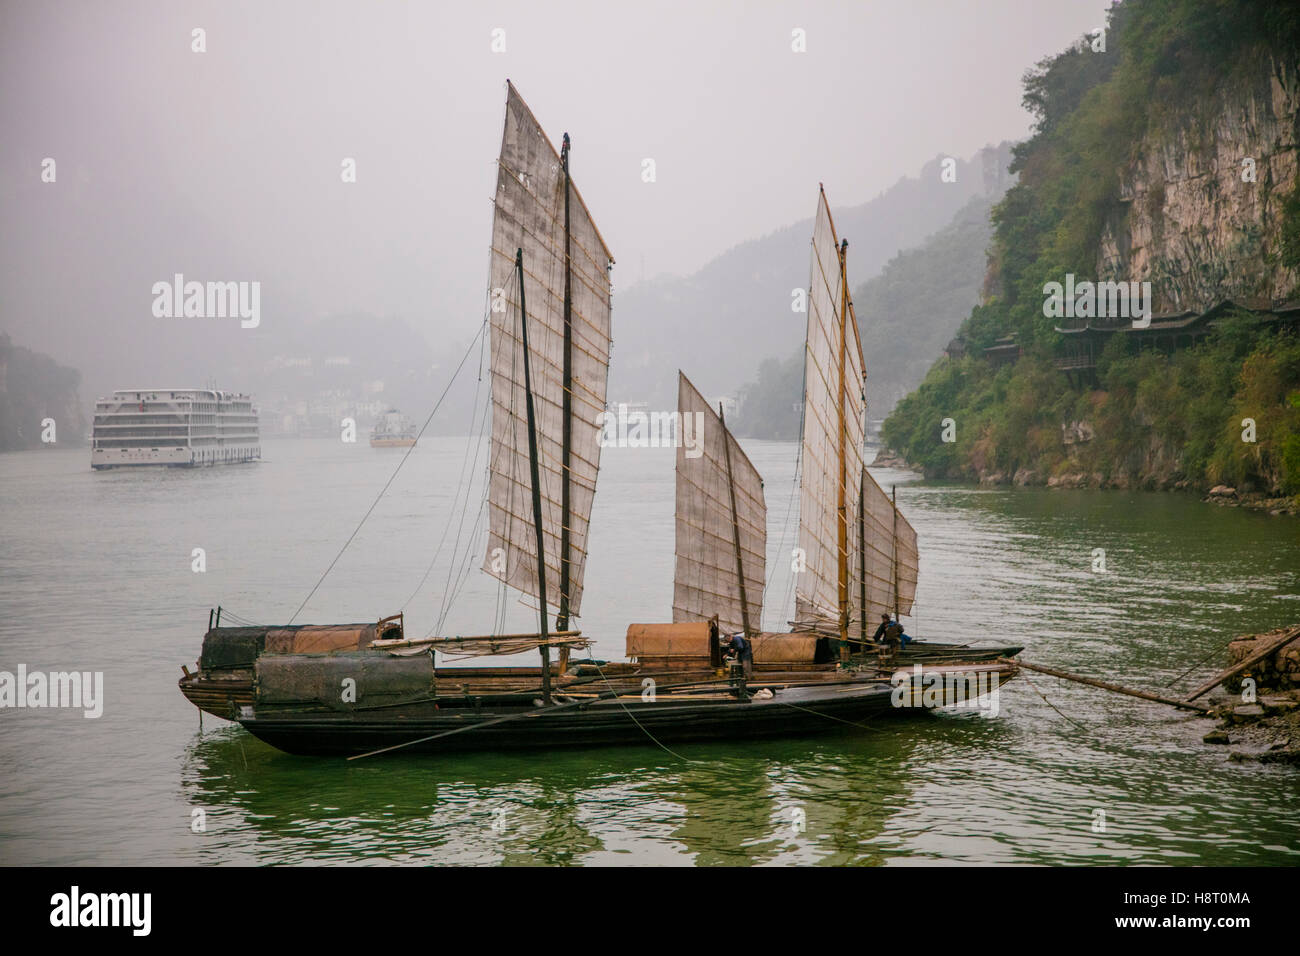 Shennong Stream Hubei Province Yangtze River China victoria Cruises asia 2016 sailing junk boat traditional - Stock Image